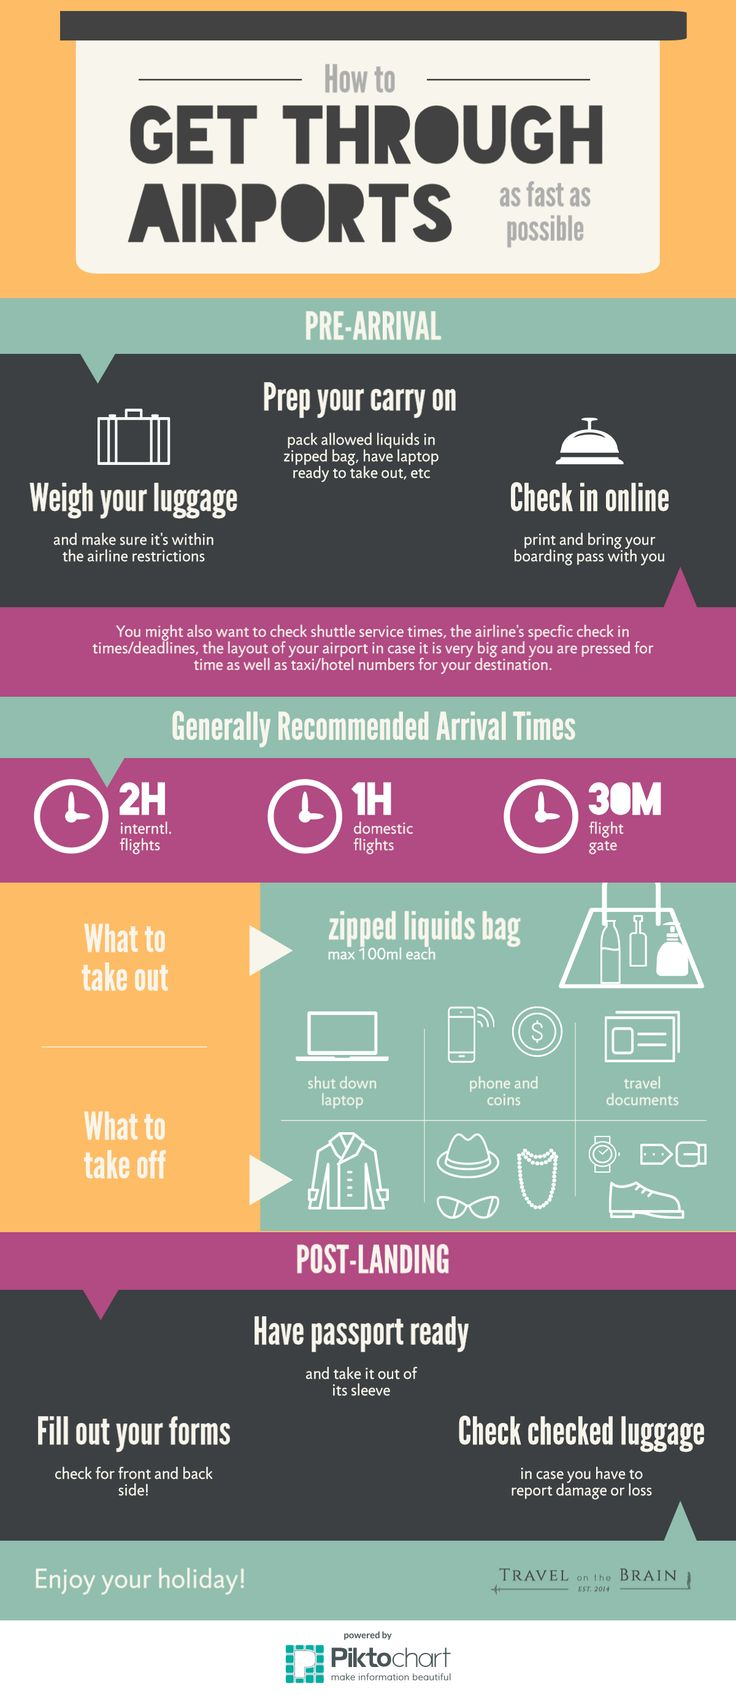 Handy Airport Hacks - read the full story